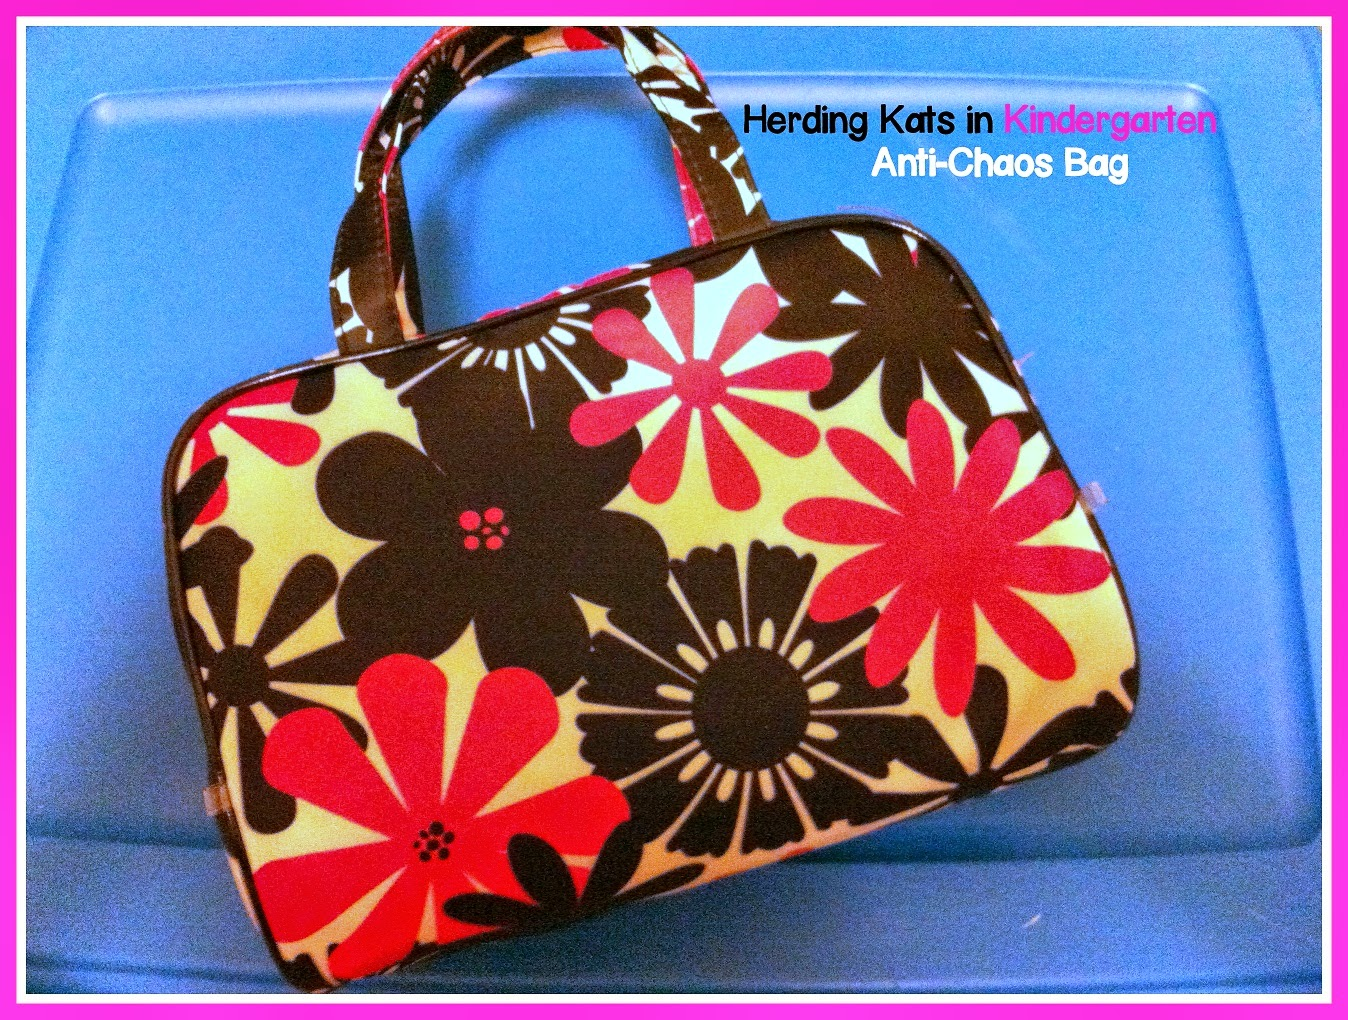 http://www.herdingkats.blogspot.com/2014/09/bright-ideas-blog-hop-anti-chaos-bag.html